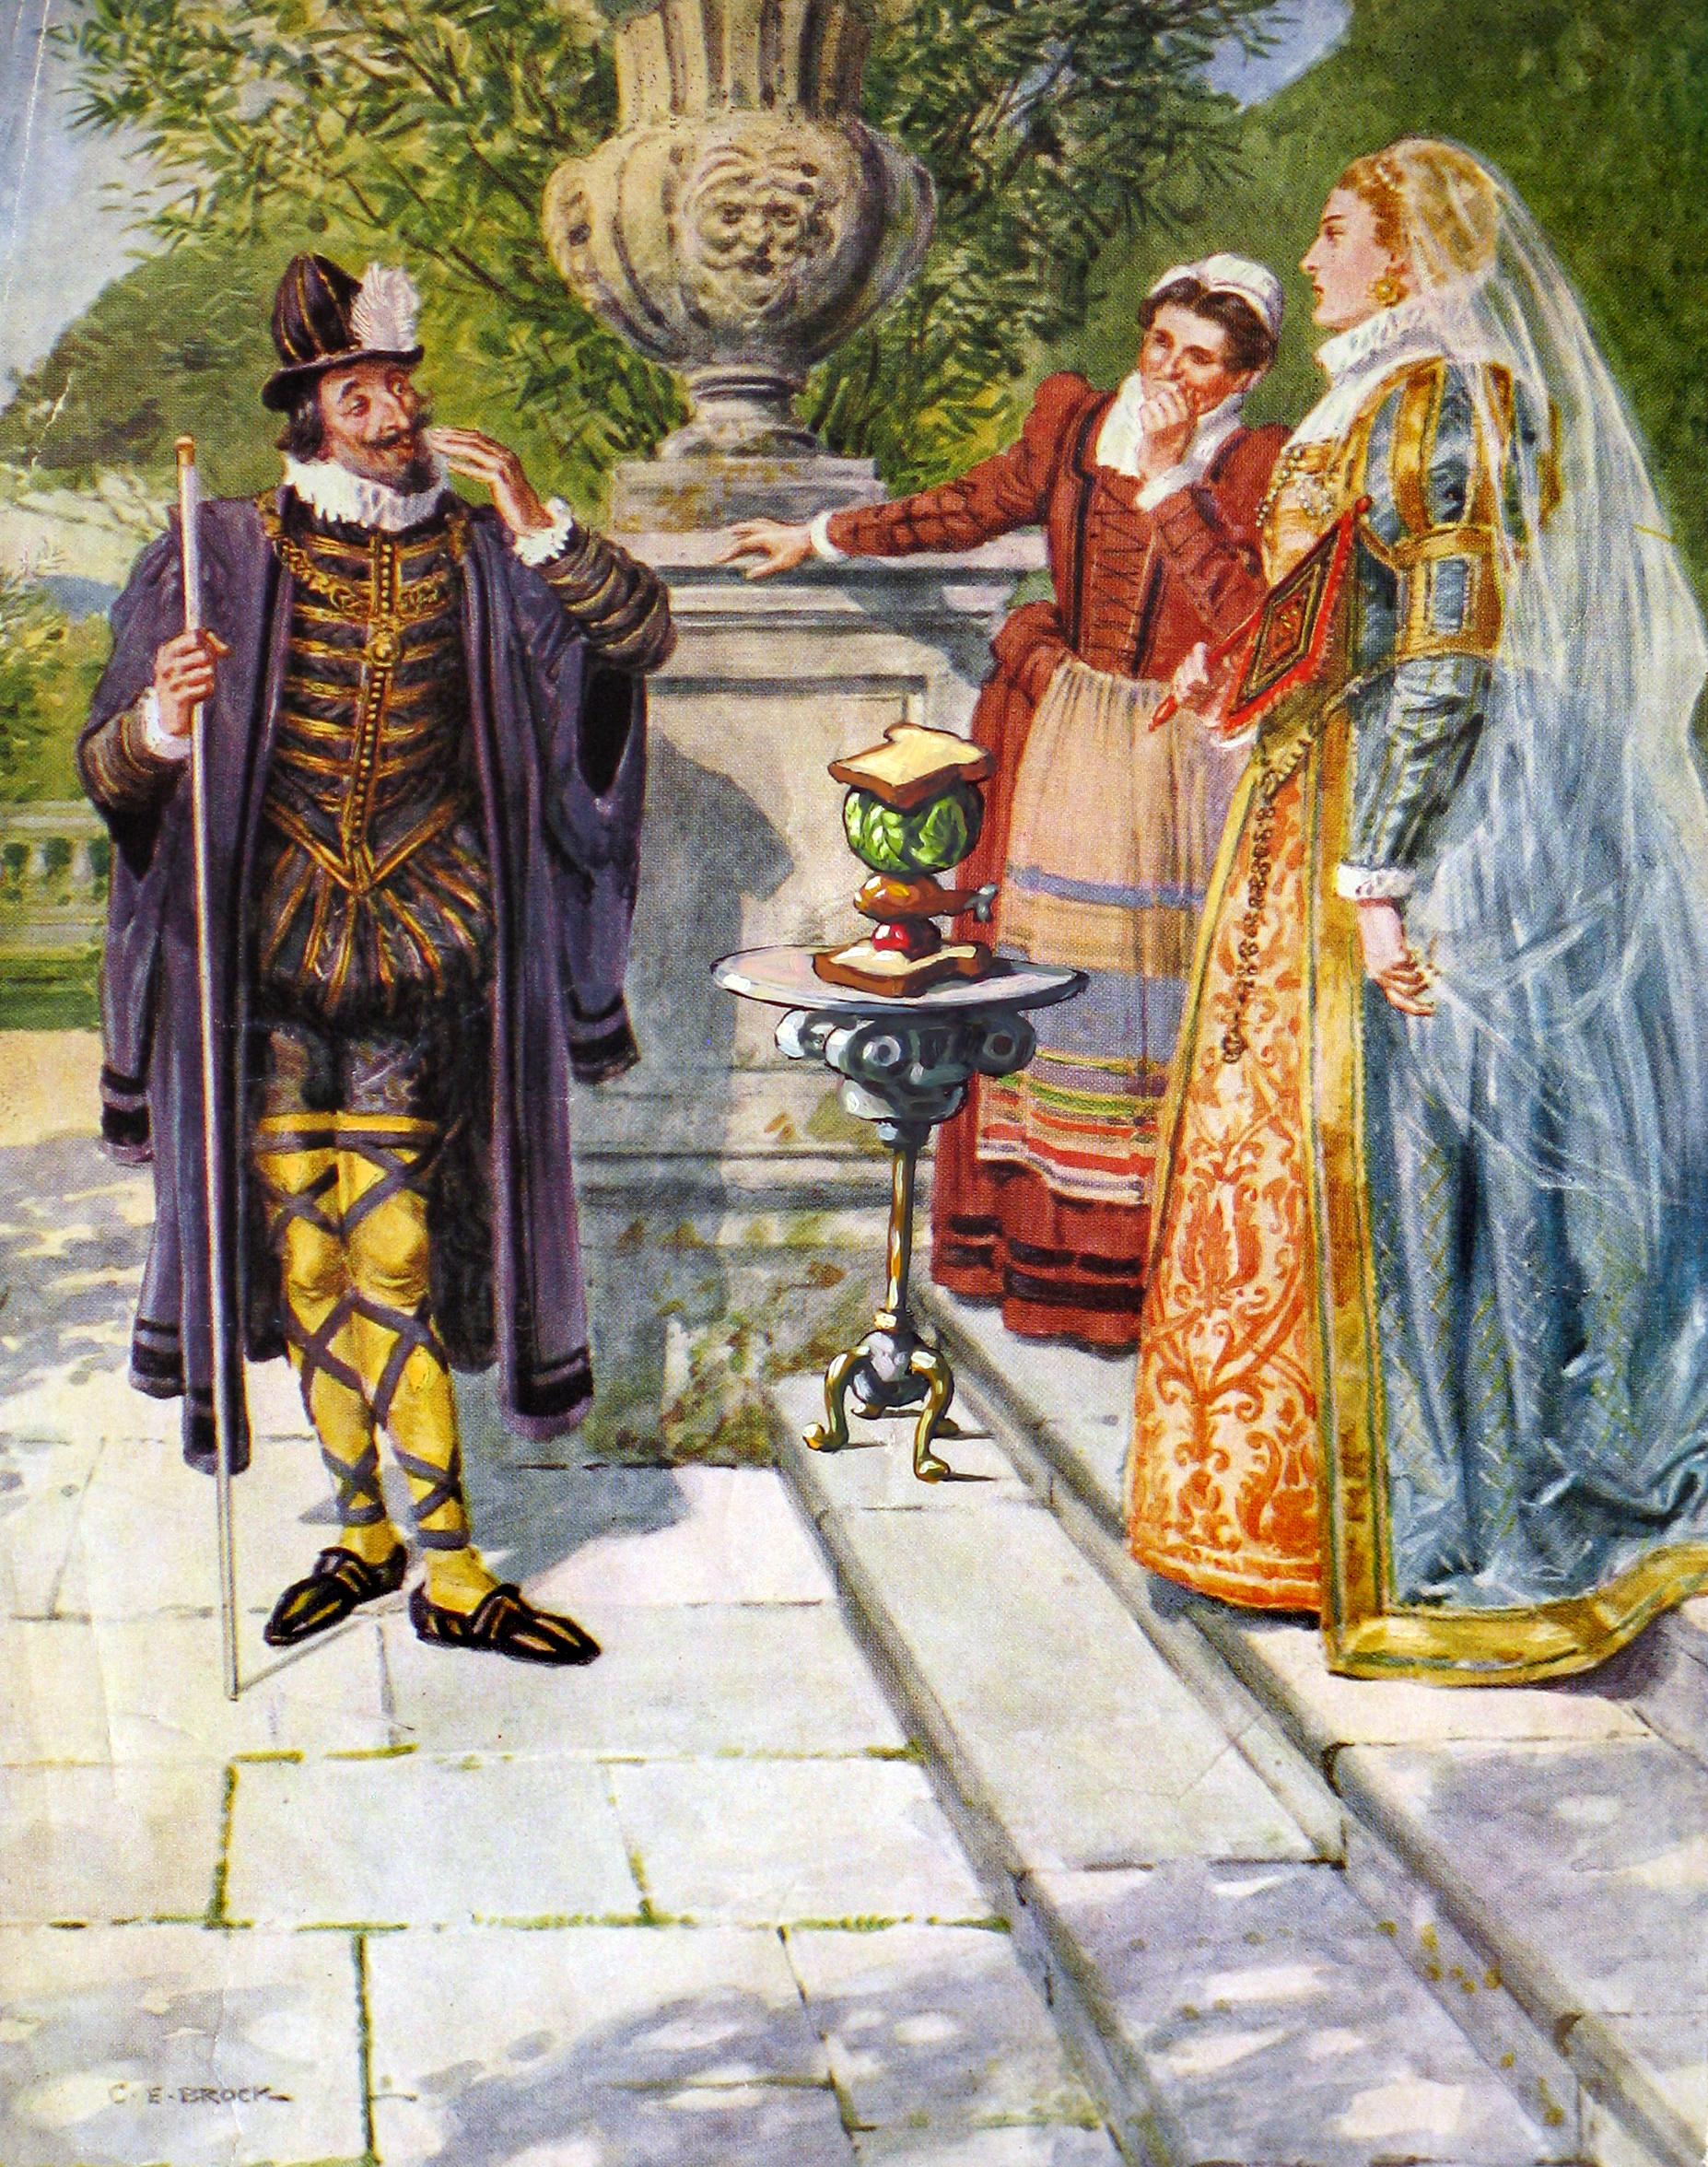 The Earl of Sandwich Presents His Prototype   • Oil on an existing print